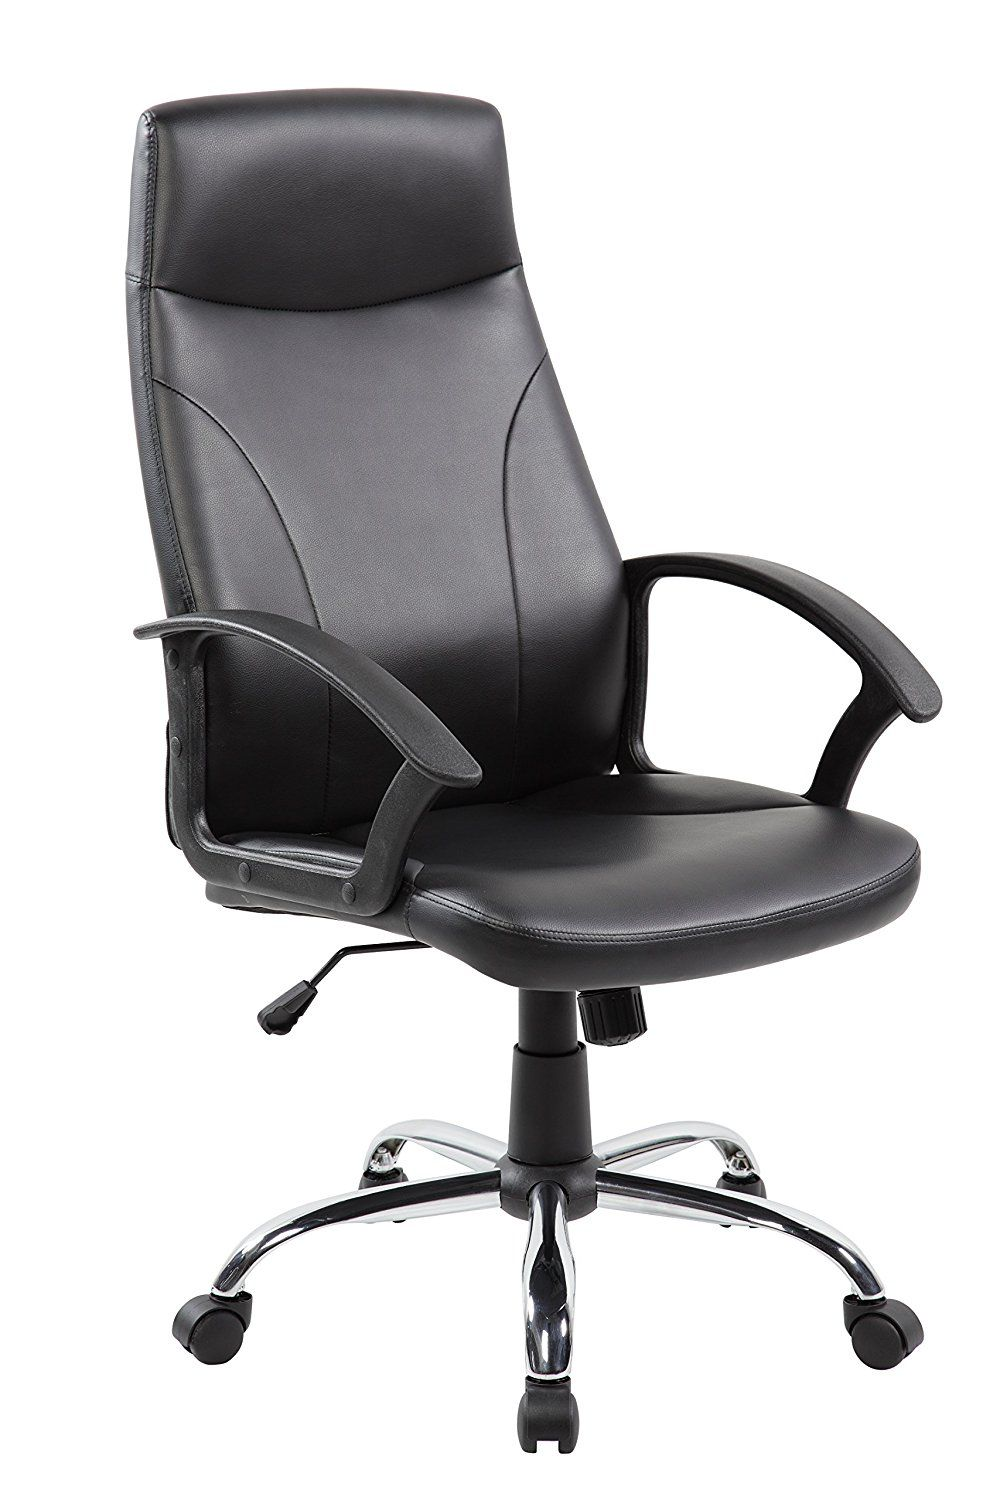 Pin on Black Wheels Office Chair